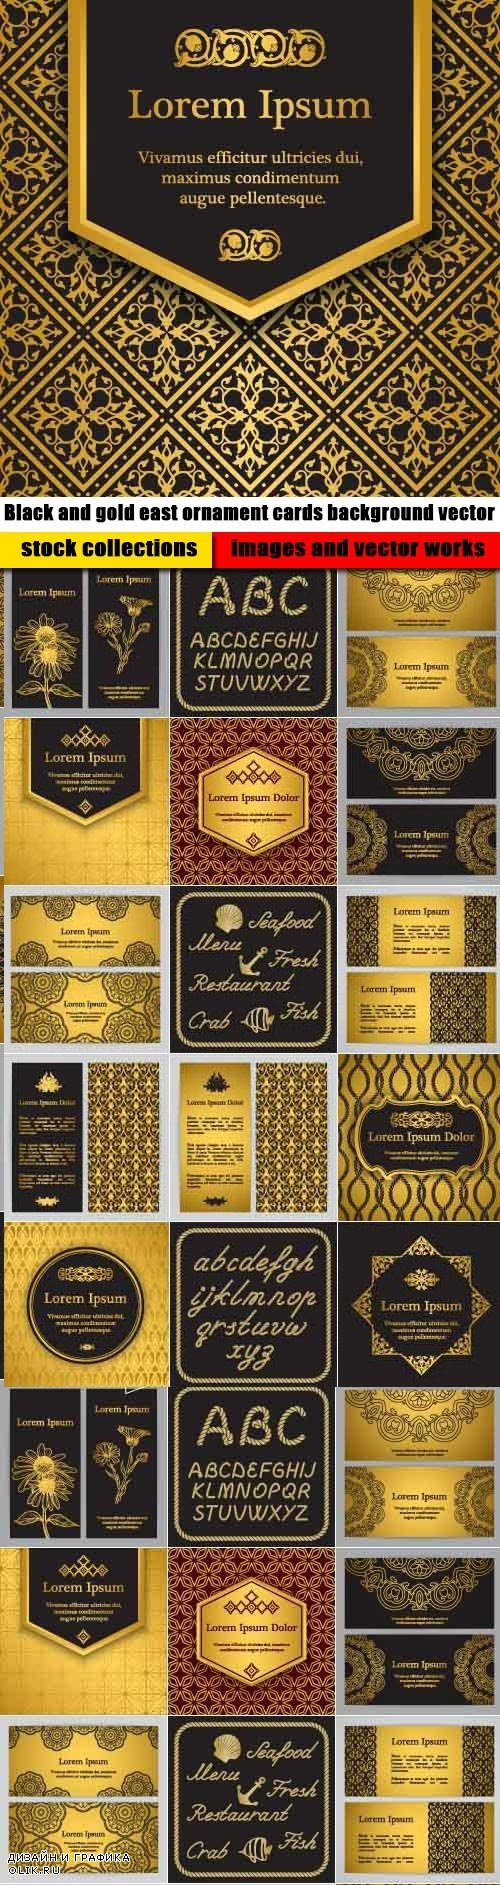 Black and gold east ornament cards background vector